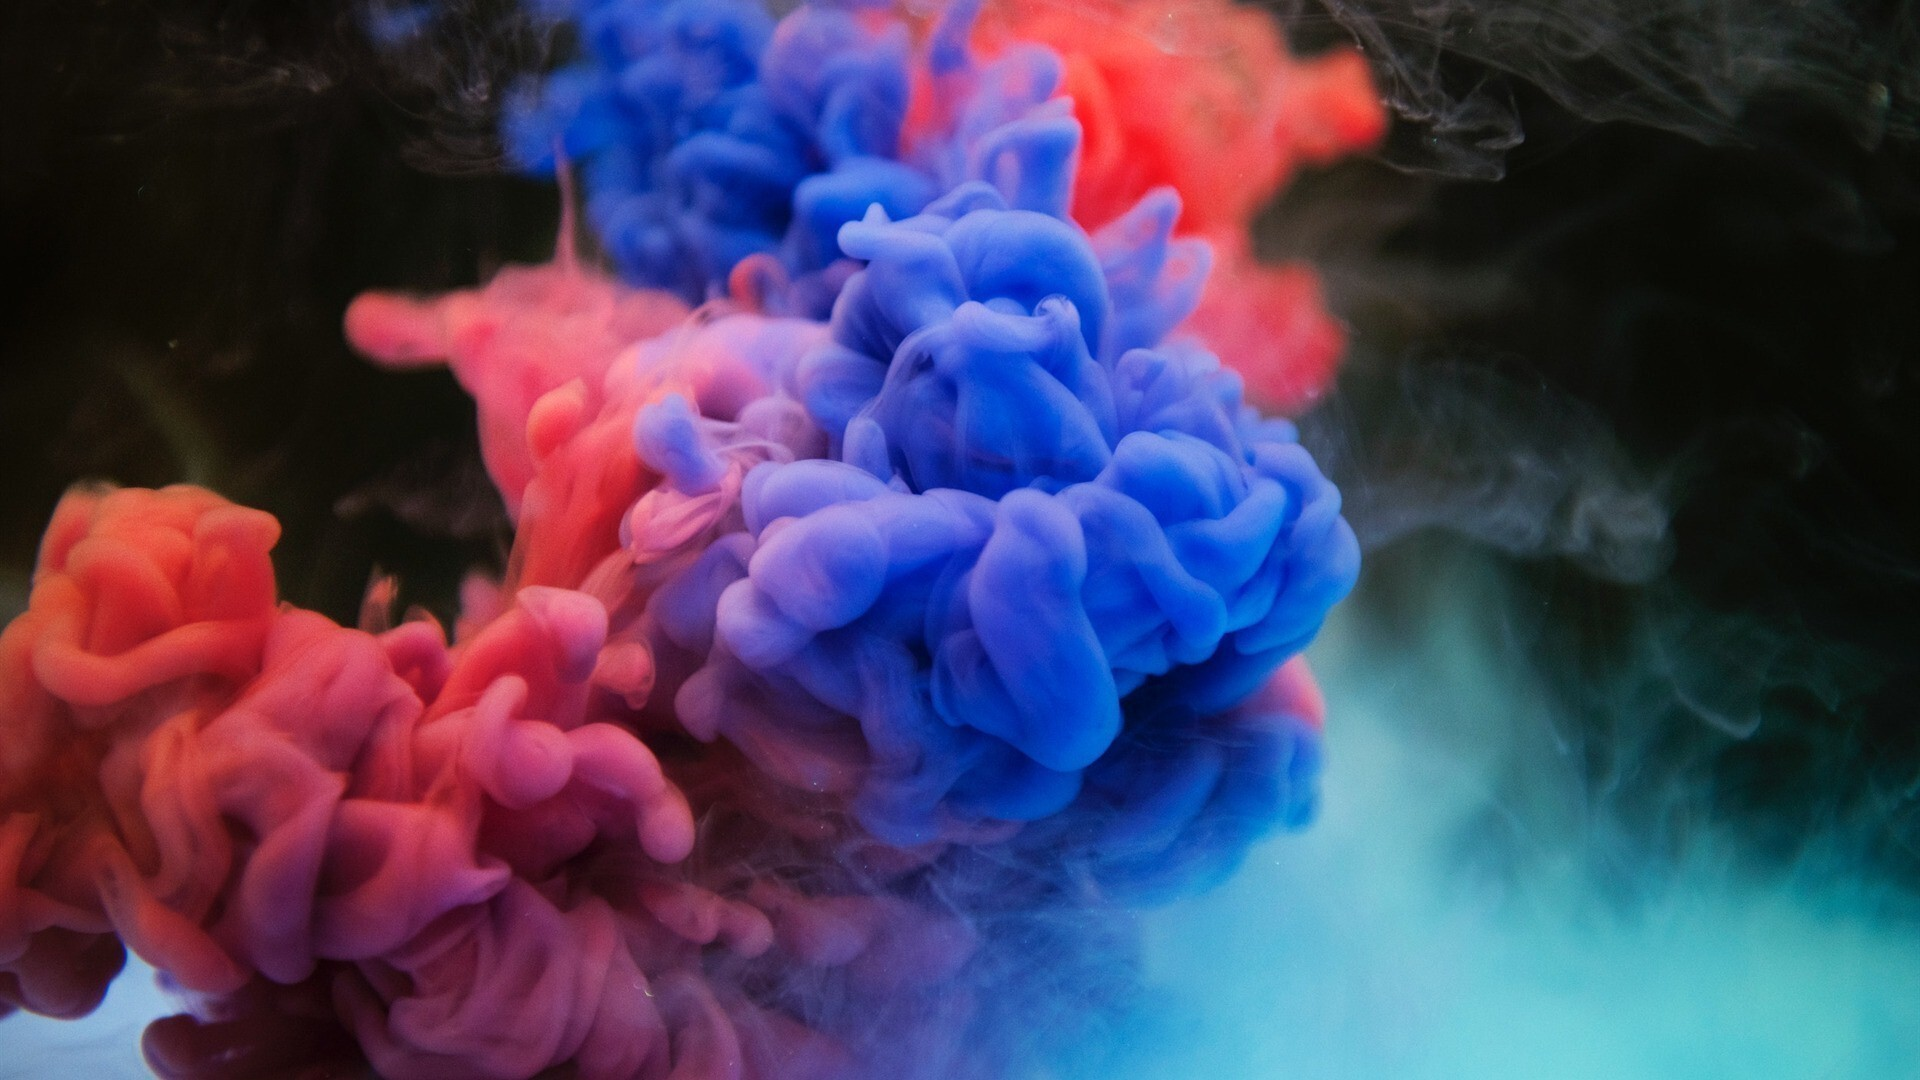 25 Colorful Hd Wallpapers To Light Up Your Display: Smoke Abstract Creative Design HD Photo